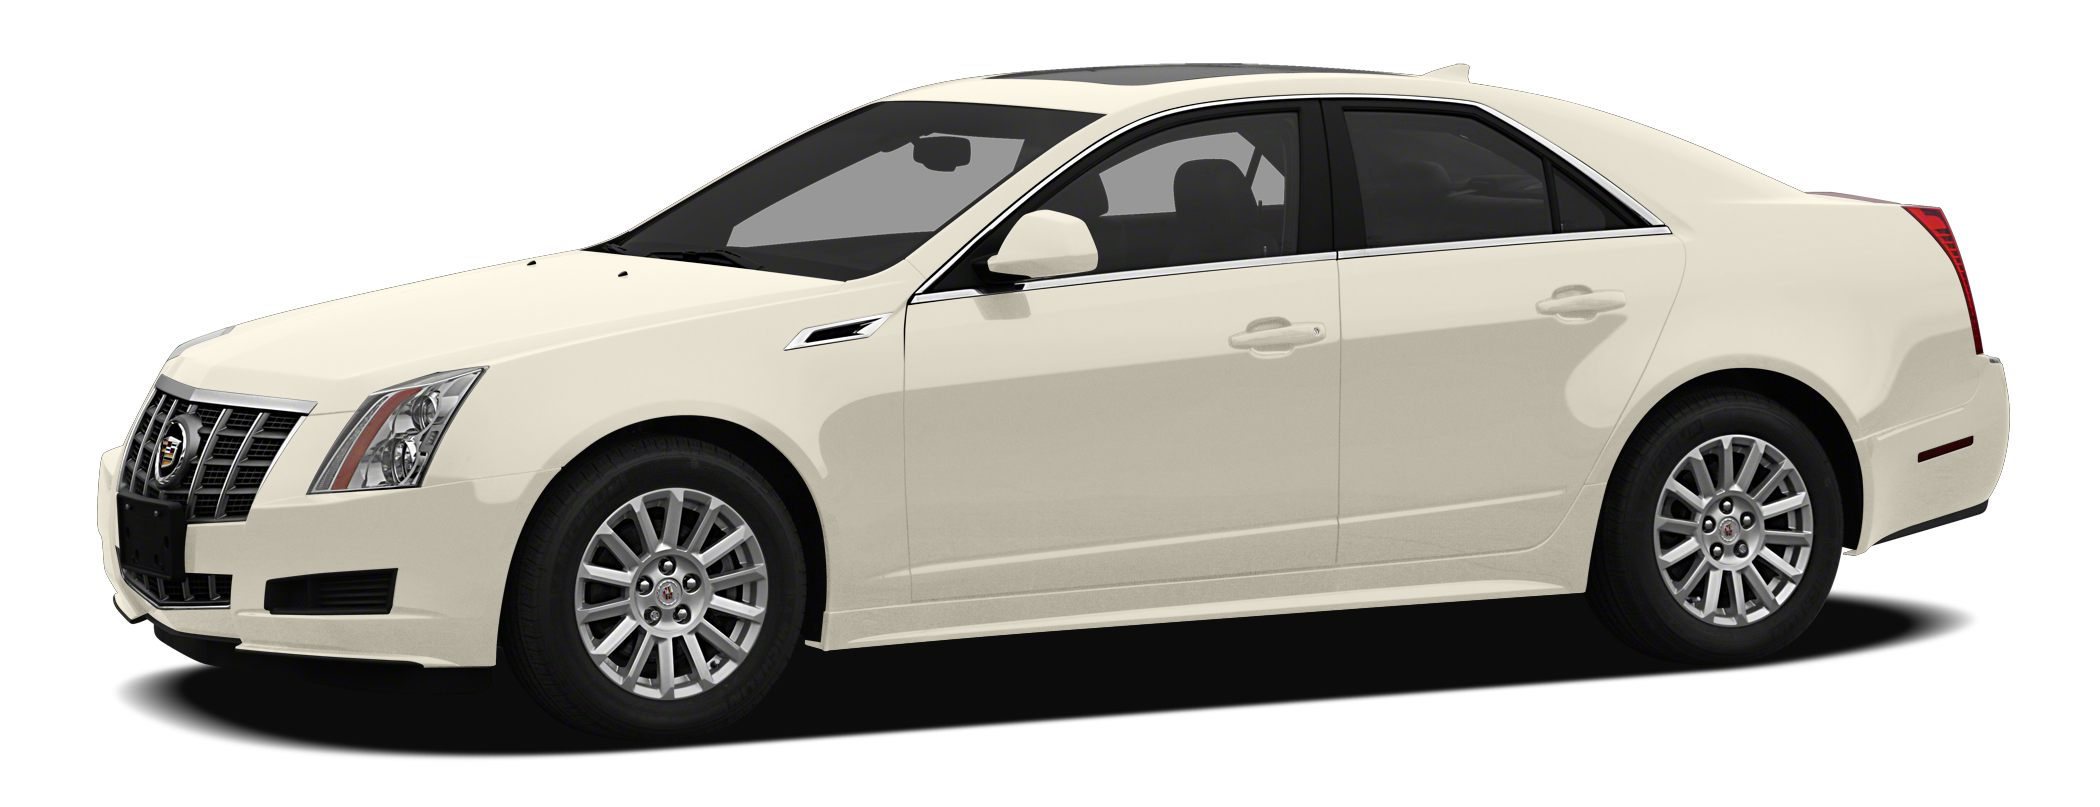 2013 Cadillac CTS Luxury A ONE OWNER LOCAL TRADE-IN WITH LOW MILES Buy with confidence - local tr